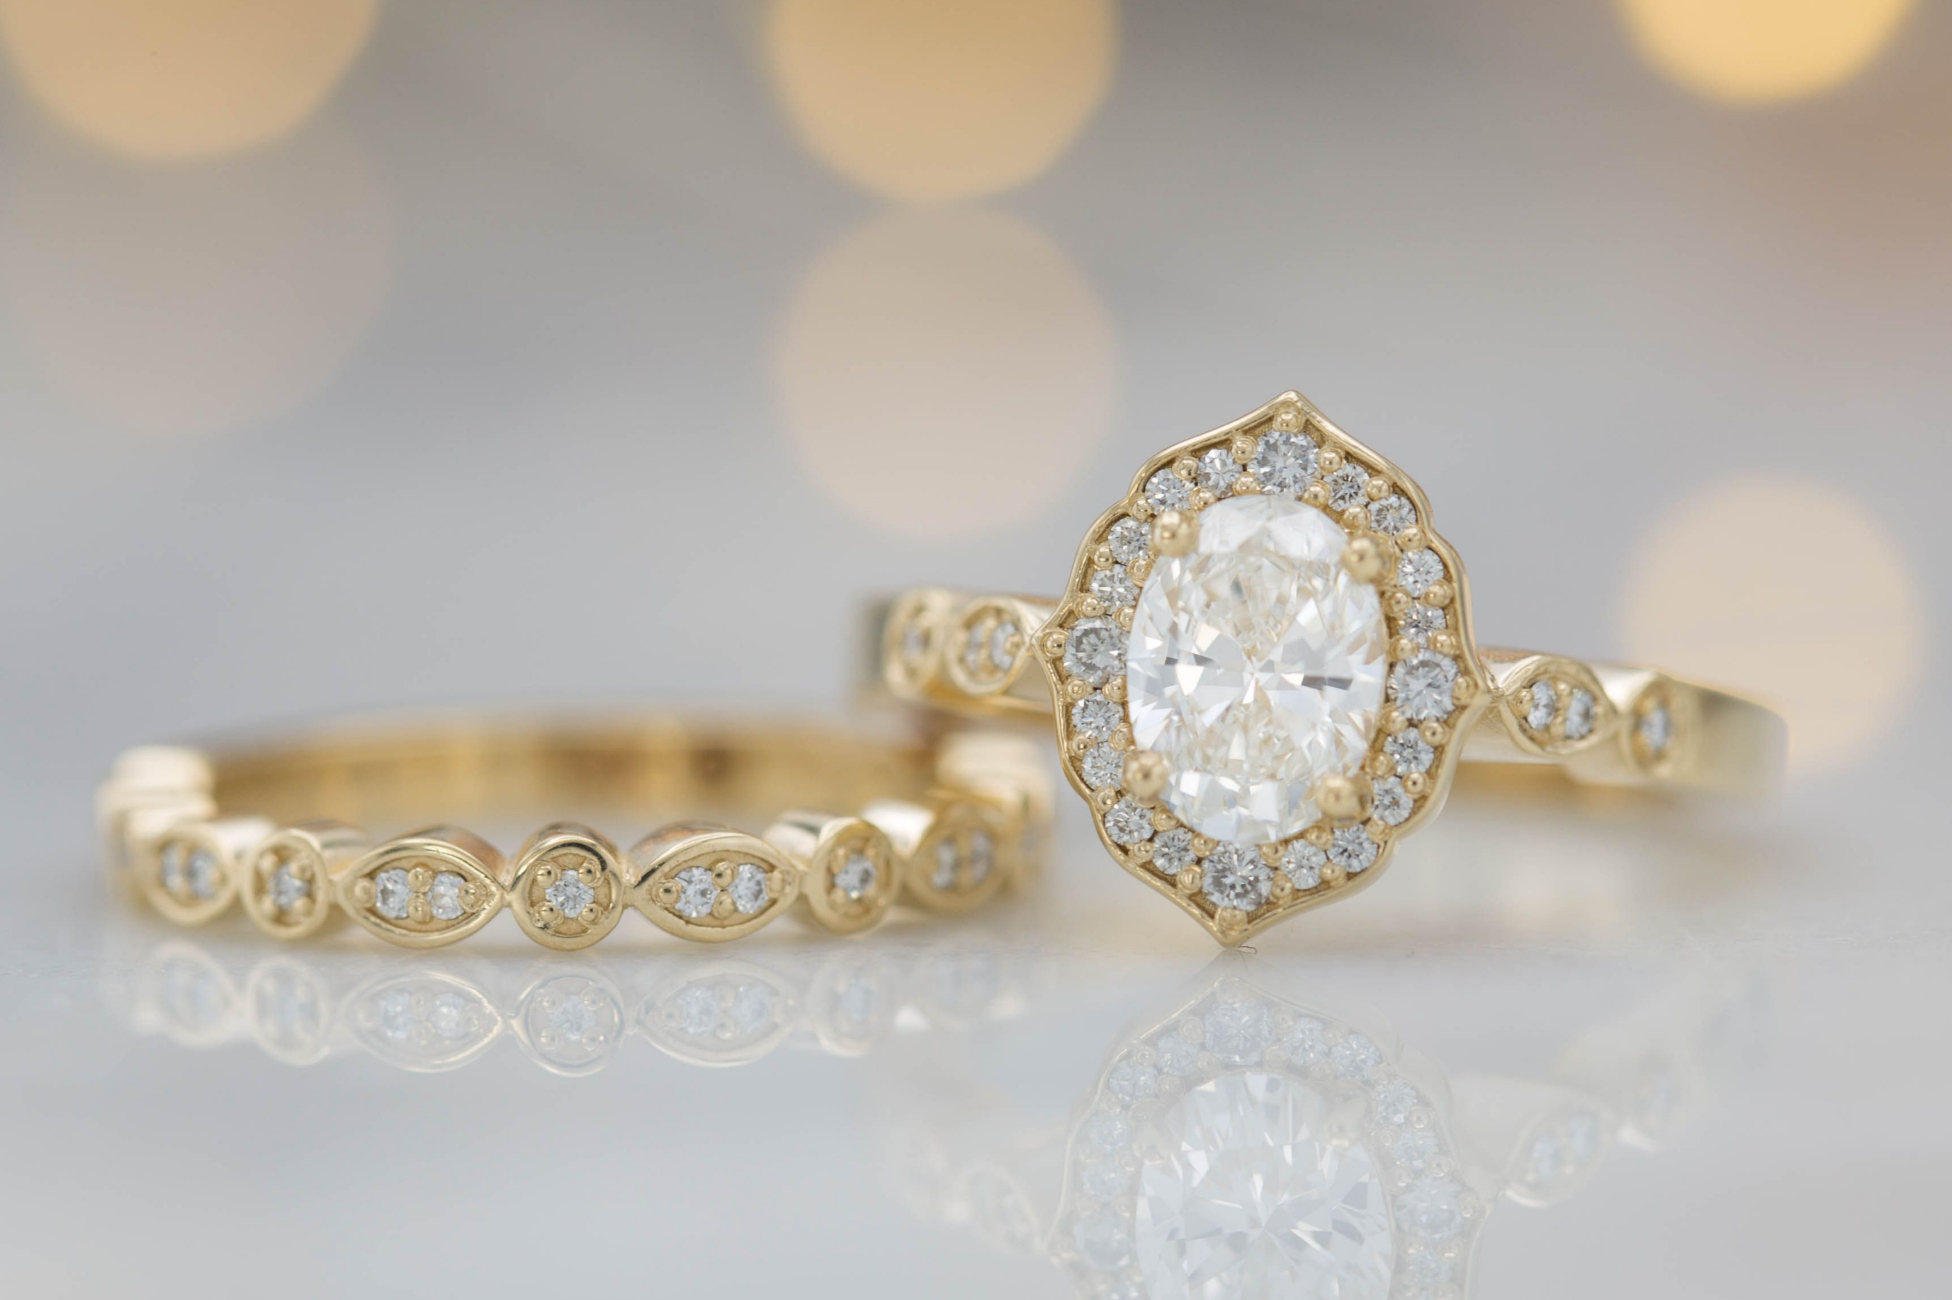 Vintage-inspired floral bridal set in yellow gold and diamond